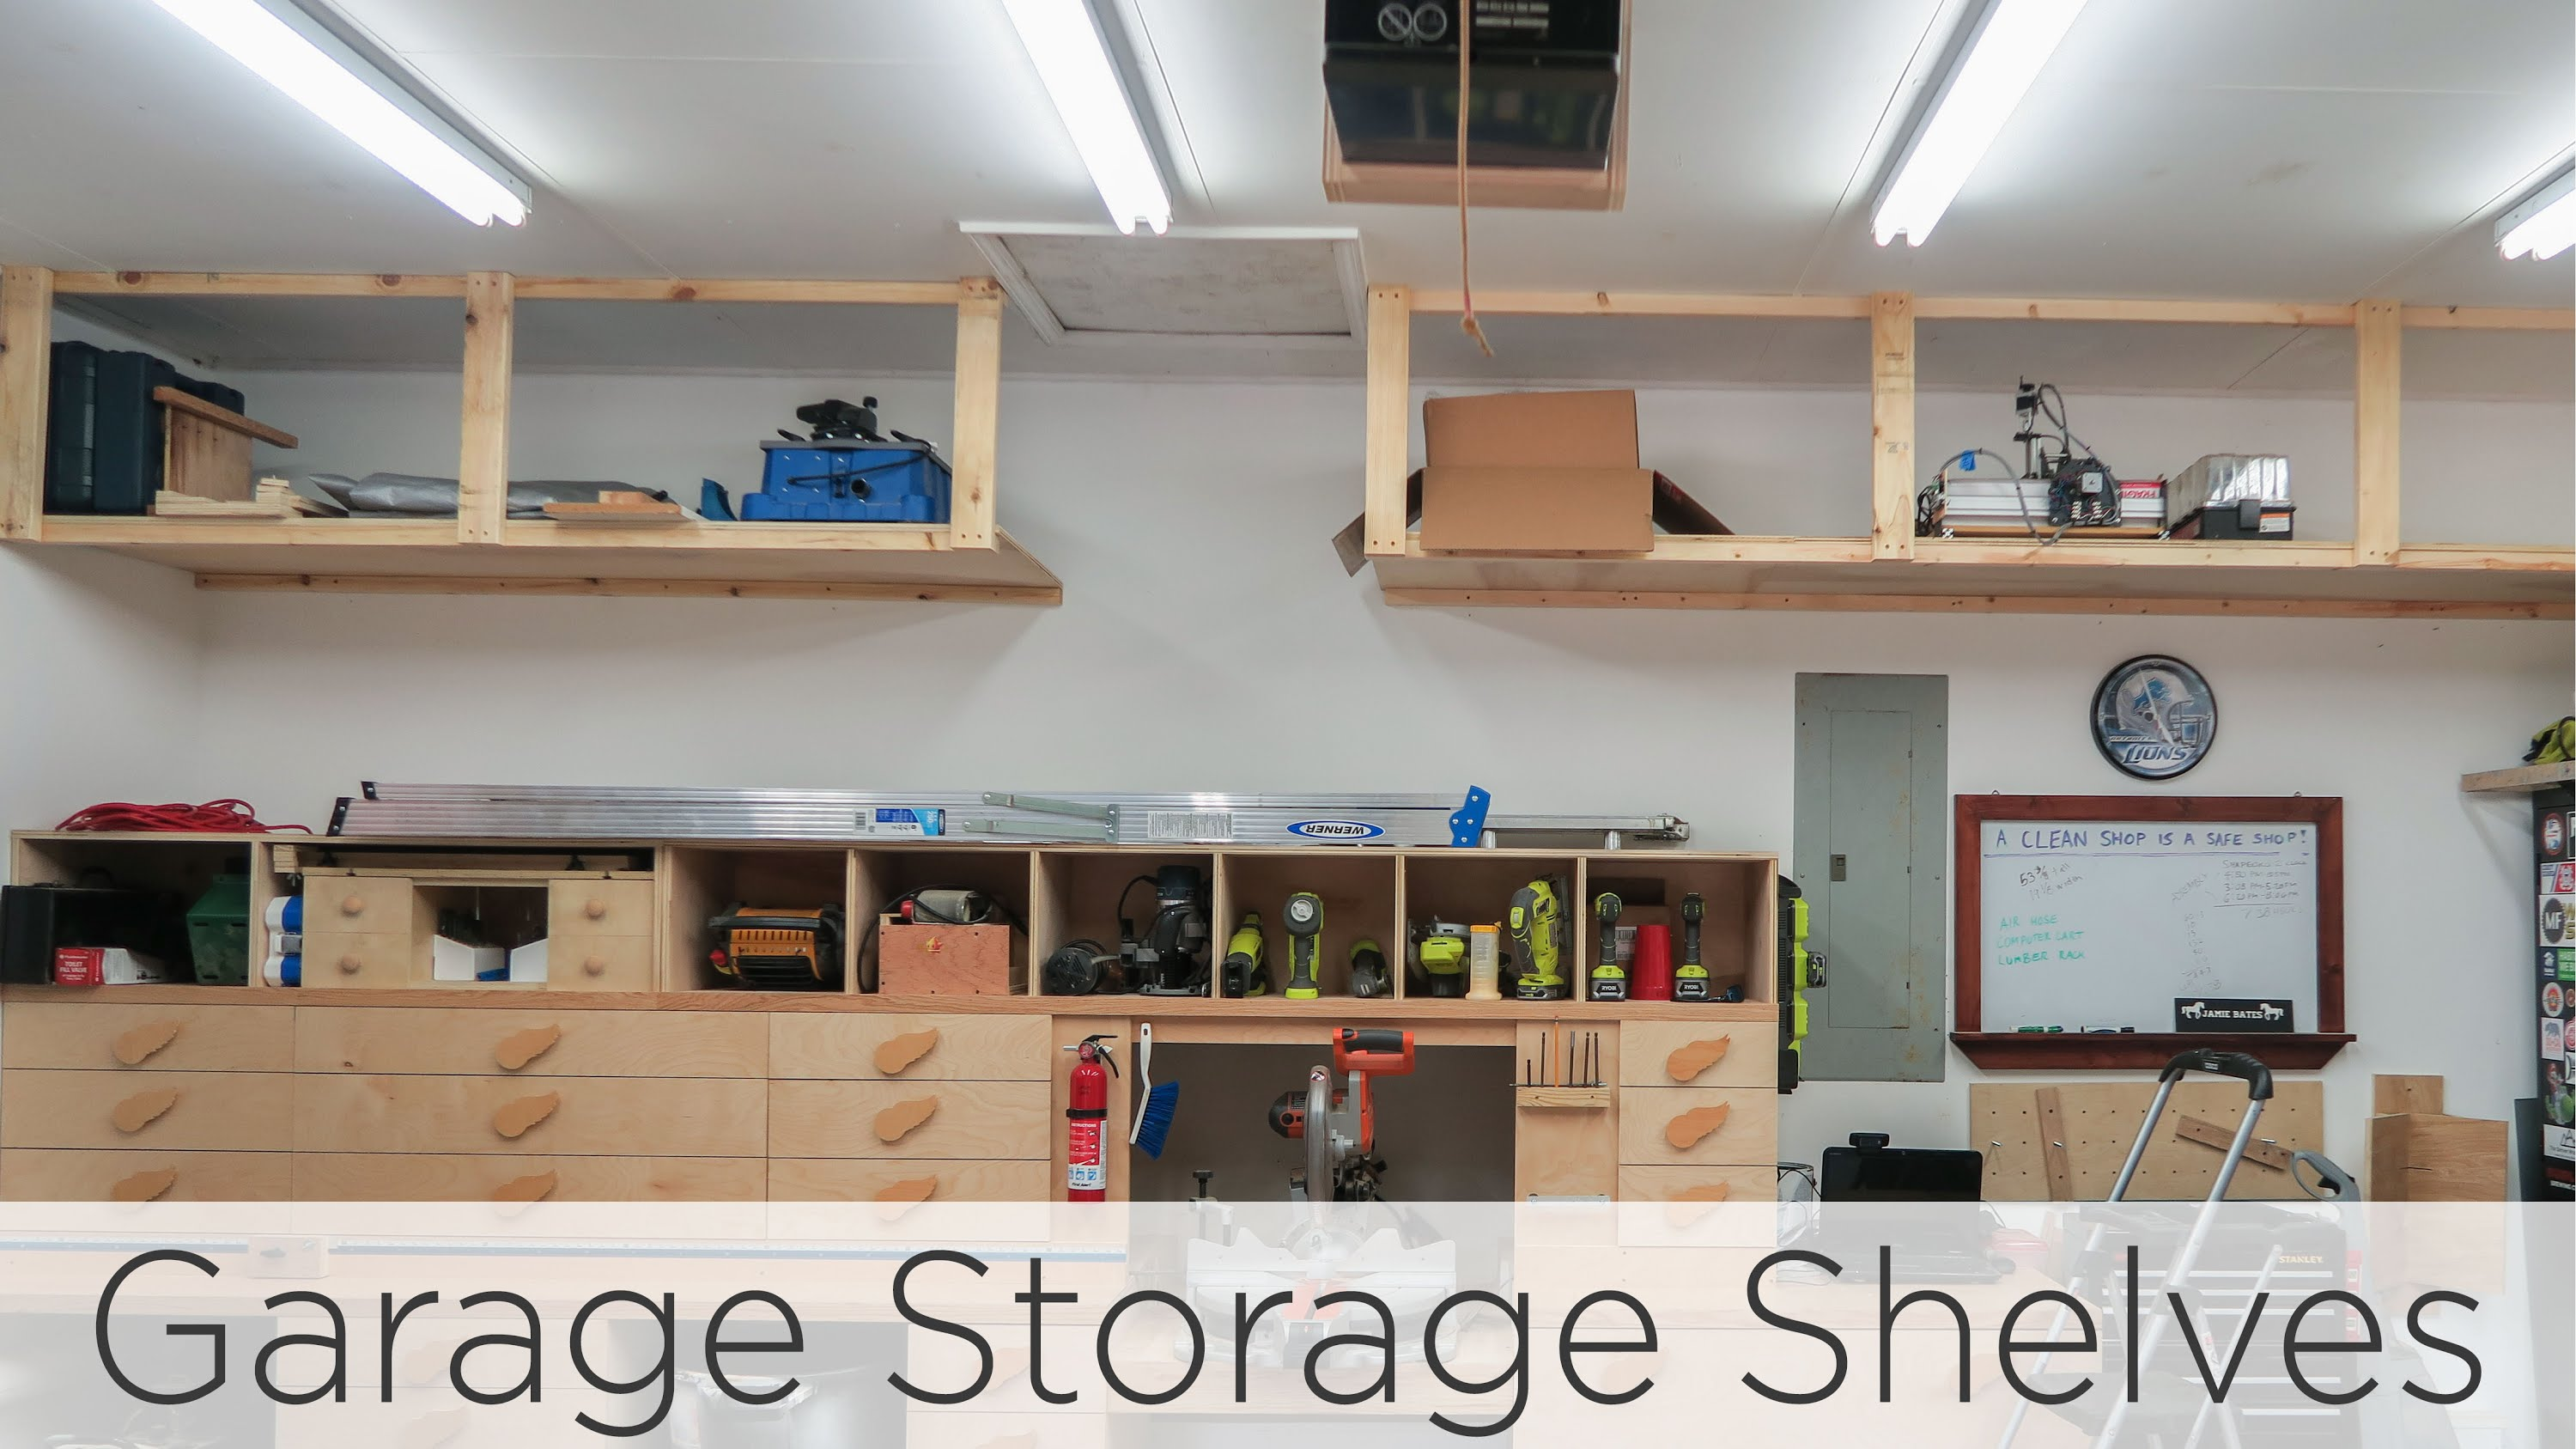 Wasted space garage storage shelves jays custom creations solutioingenieria Gallery